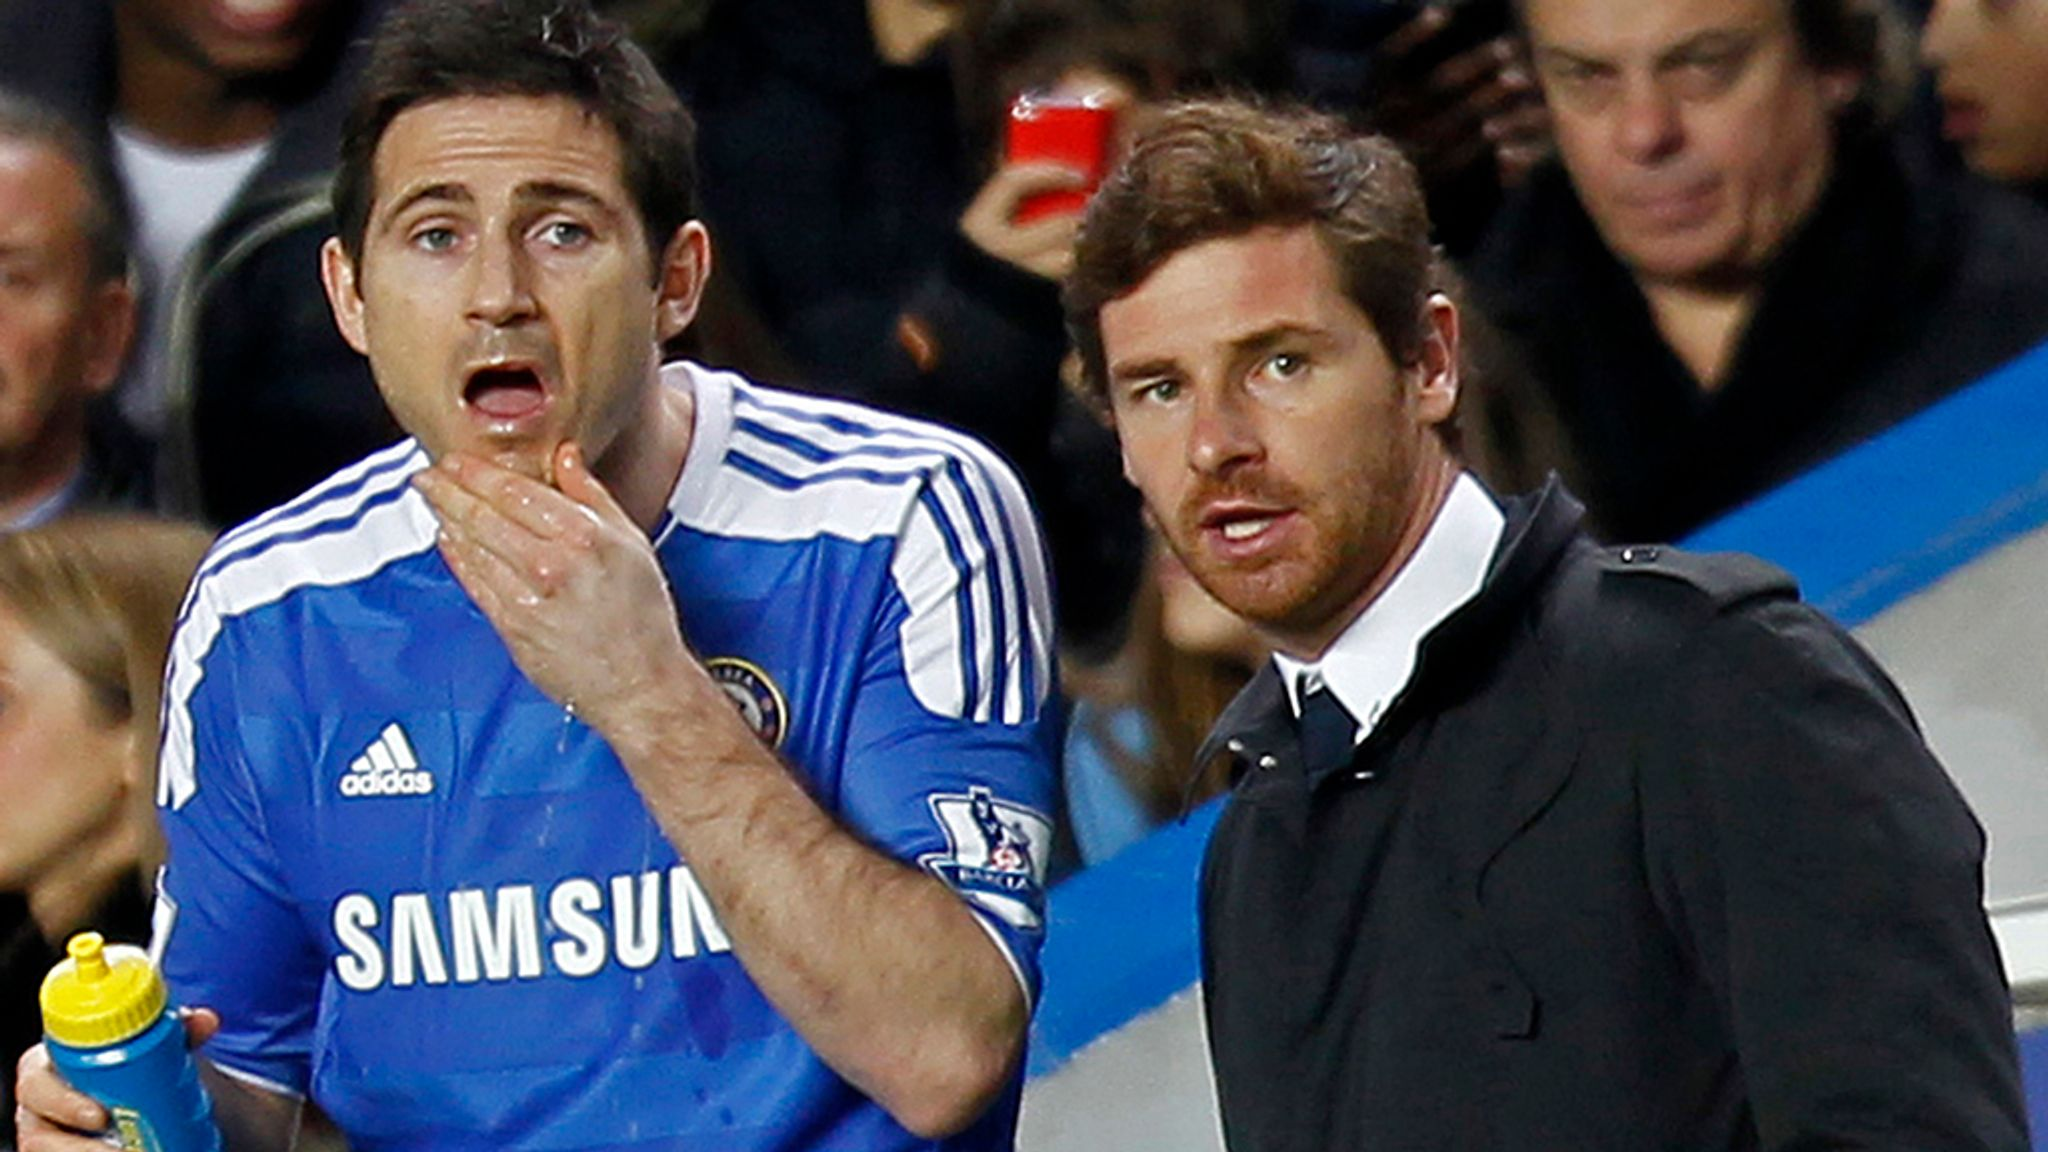 Premier League Andre Villas Boas Blasts Frank Lampard For His Lack Of Support During Chelsea Reign Football News Sky Sports